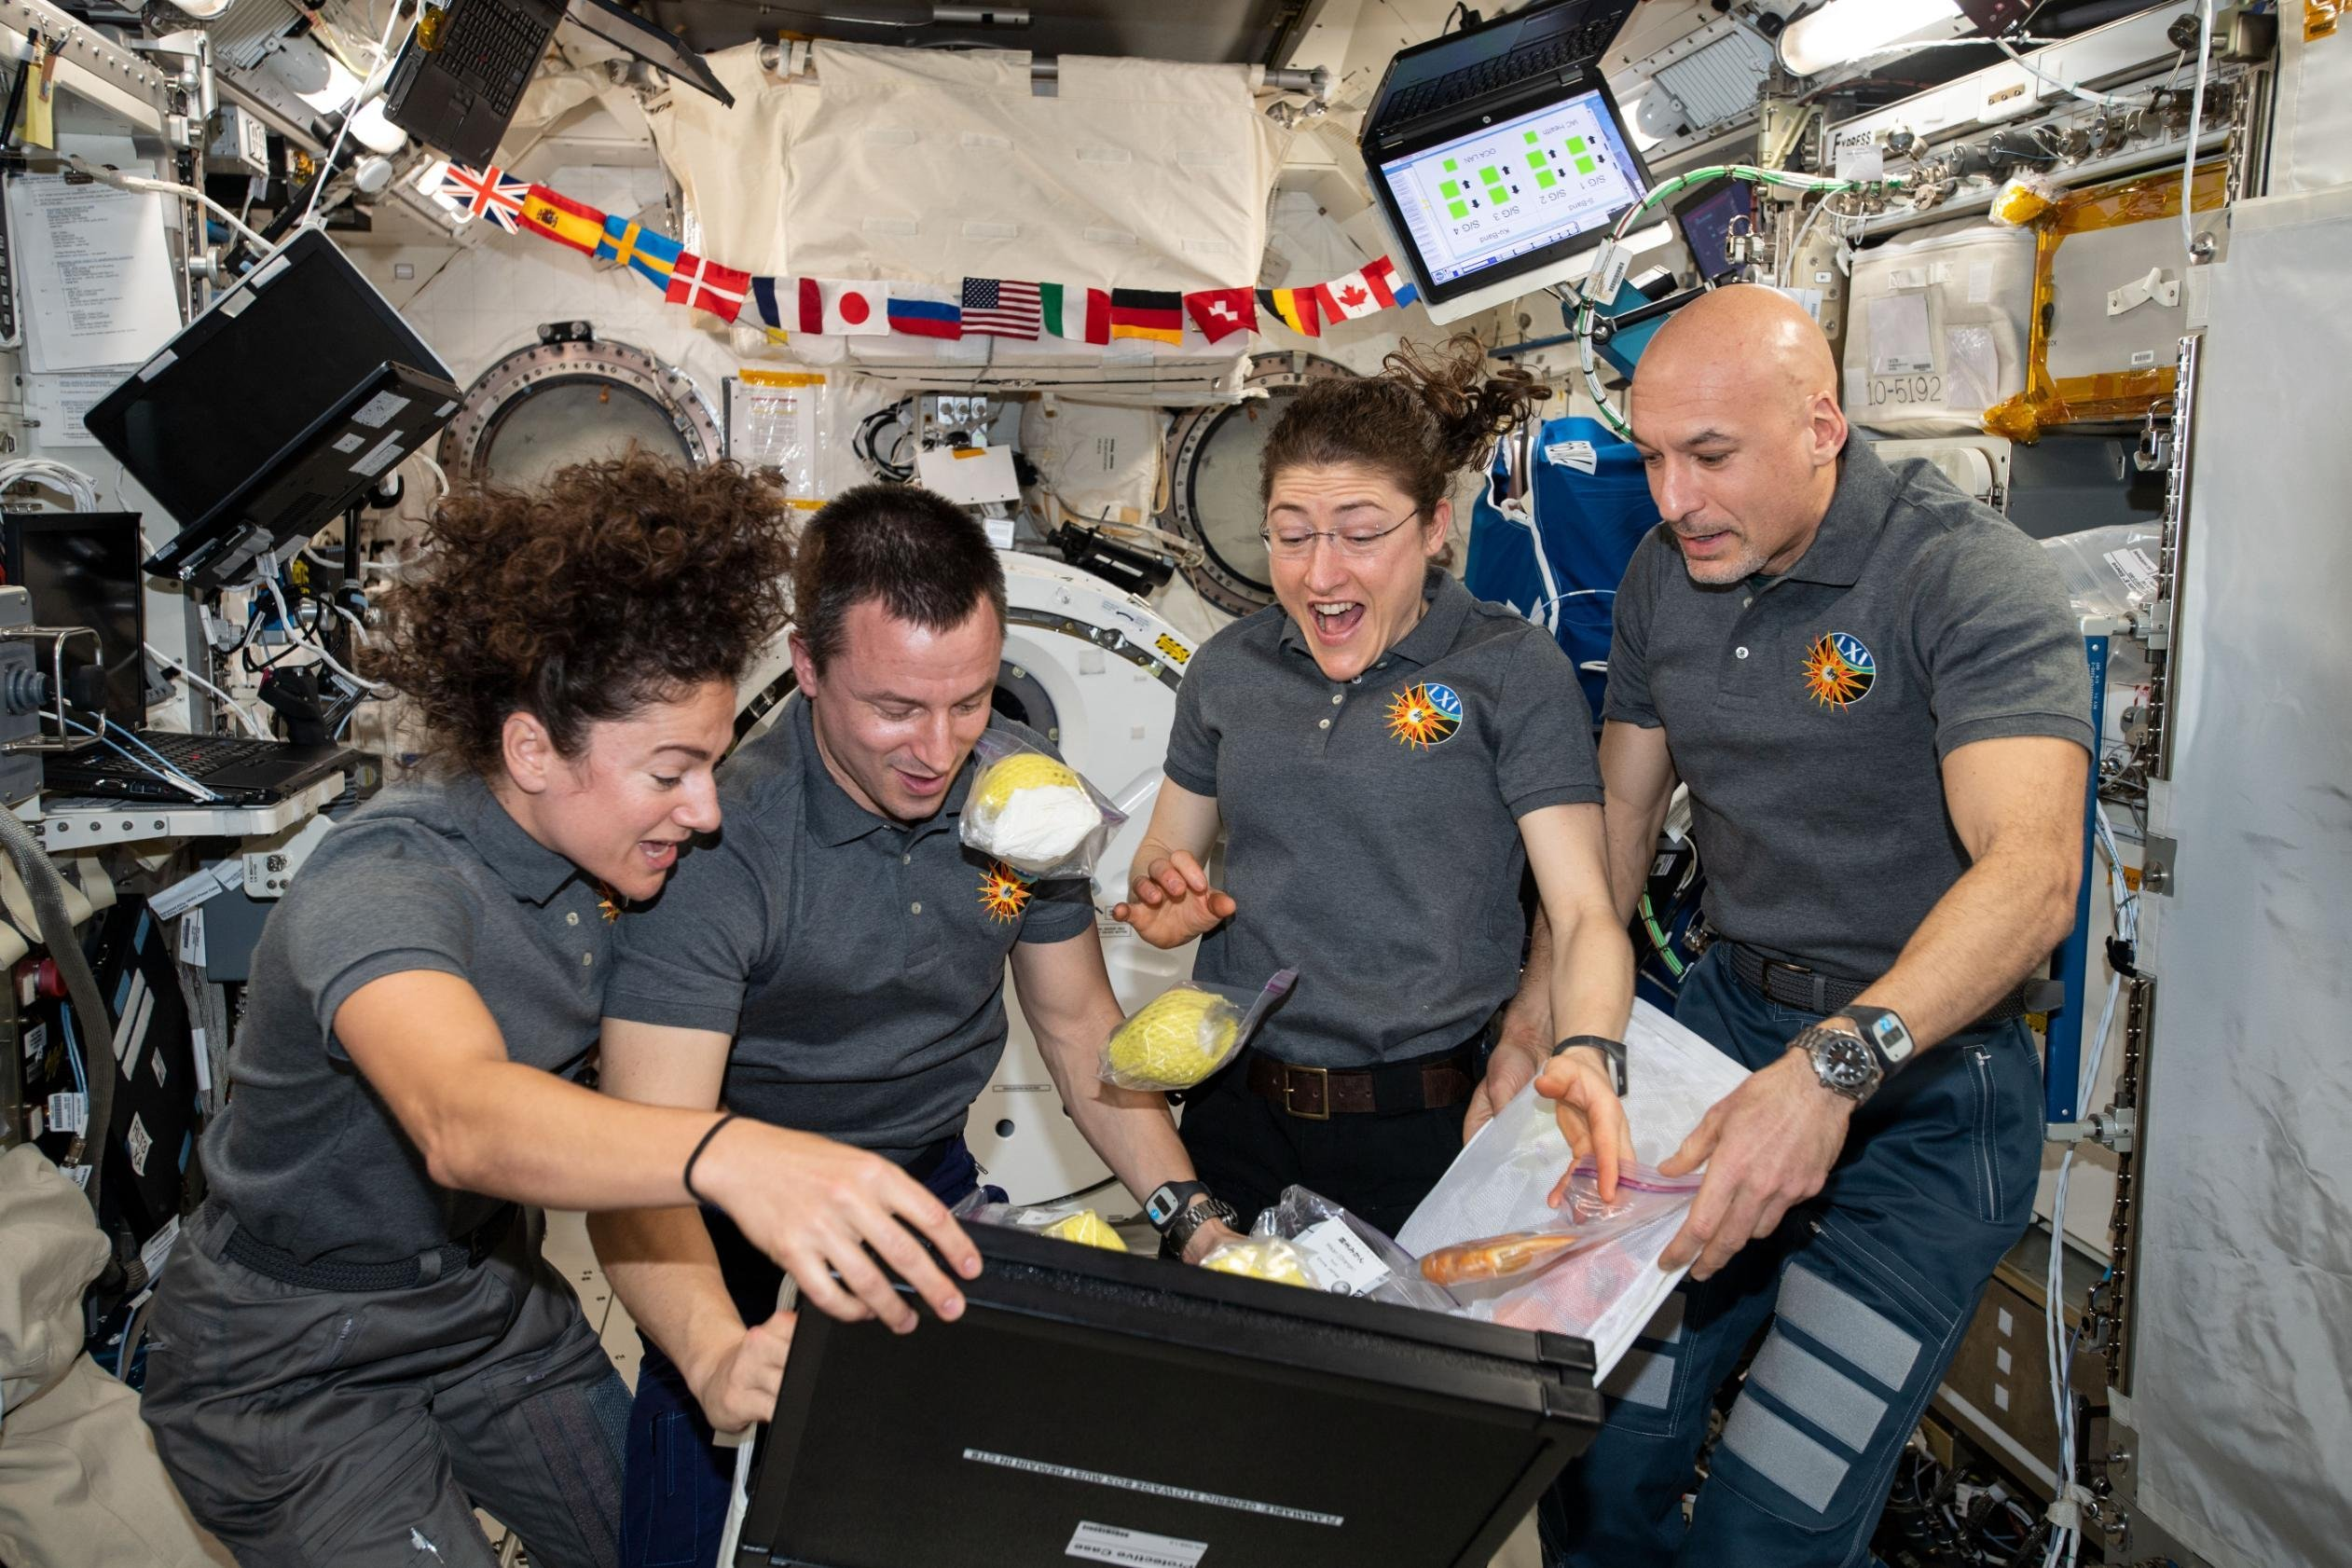 What's it like to live on the International Space Station?